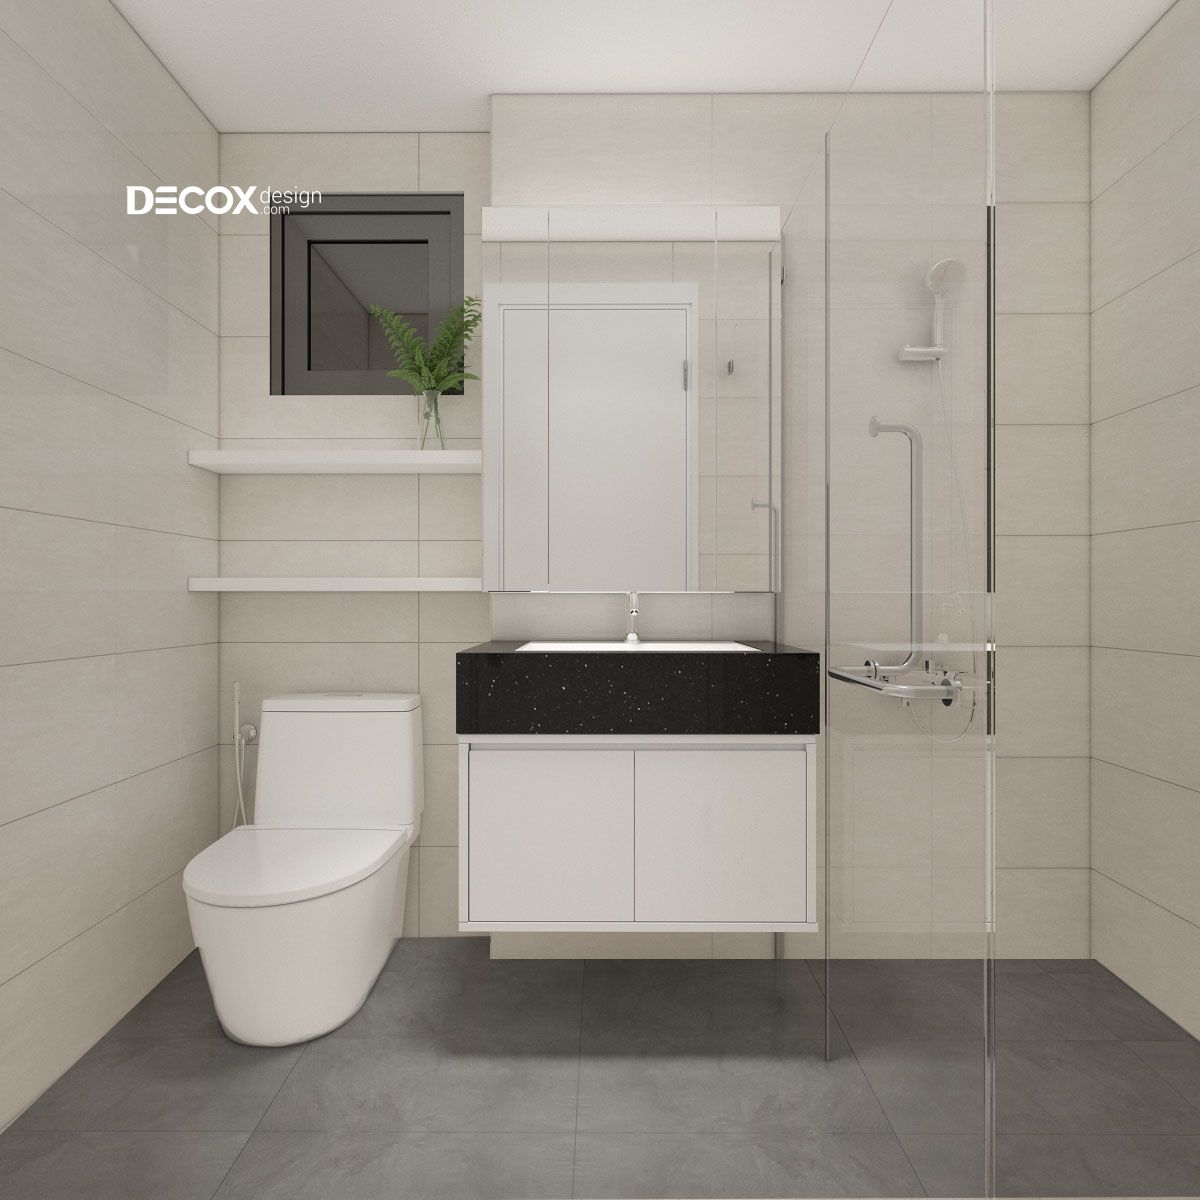 thiet-ke-noi-that-masteri-an-phu-90m2-de190053-15-wc-master-decox-design